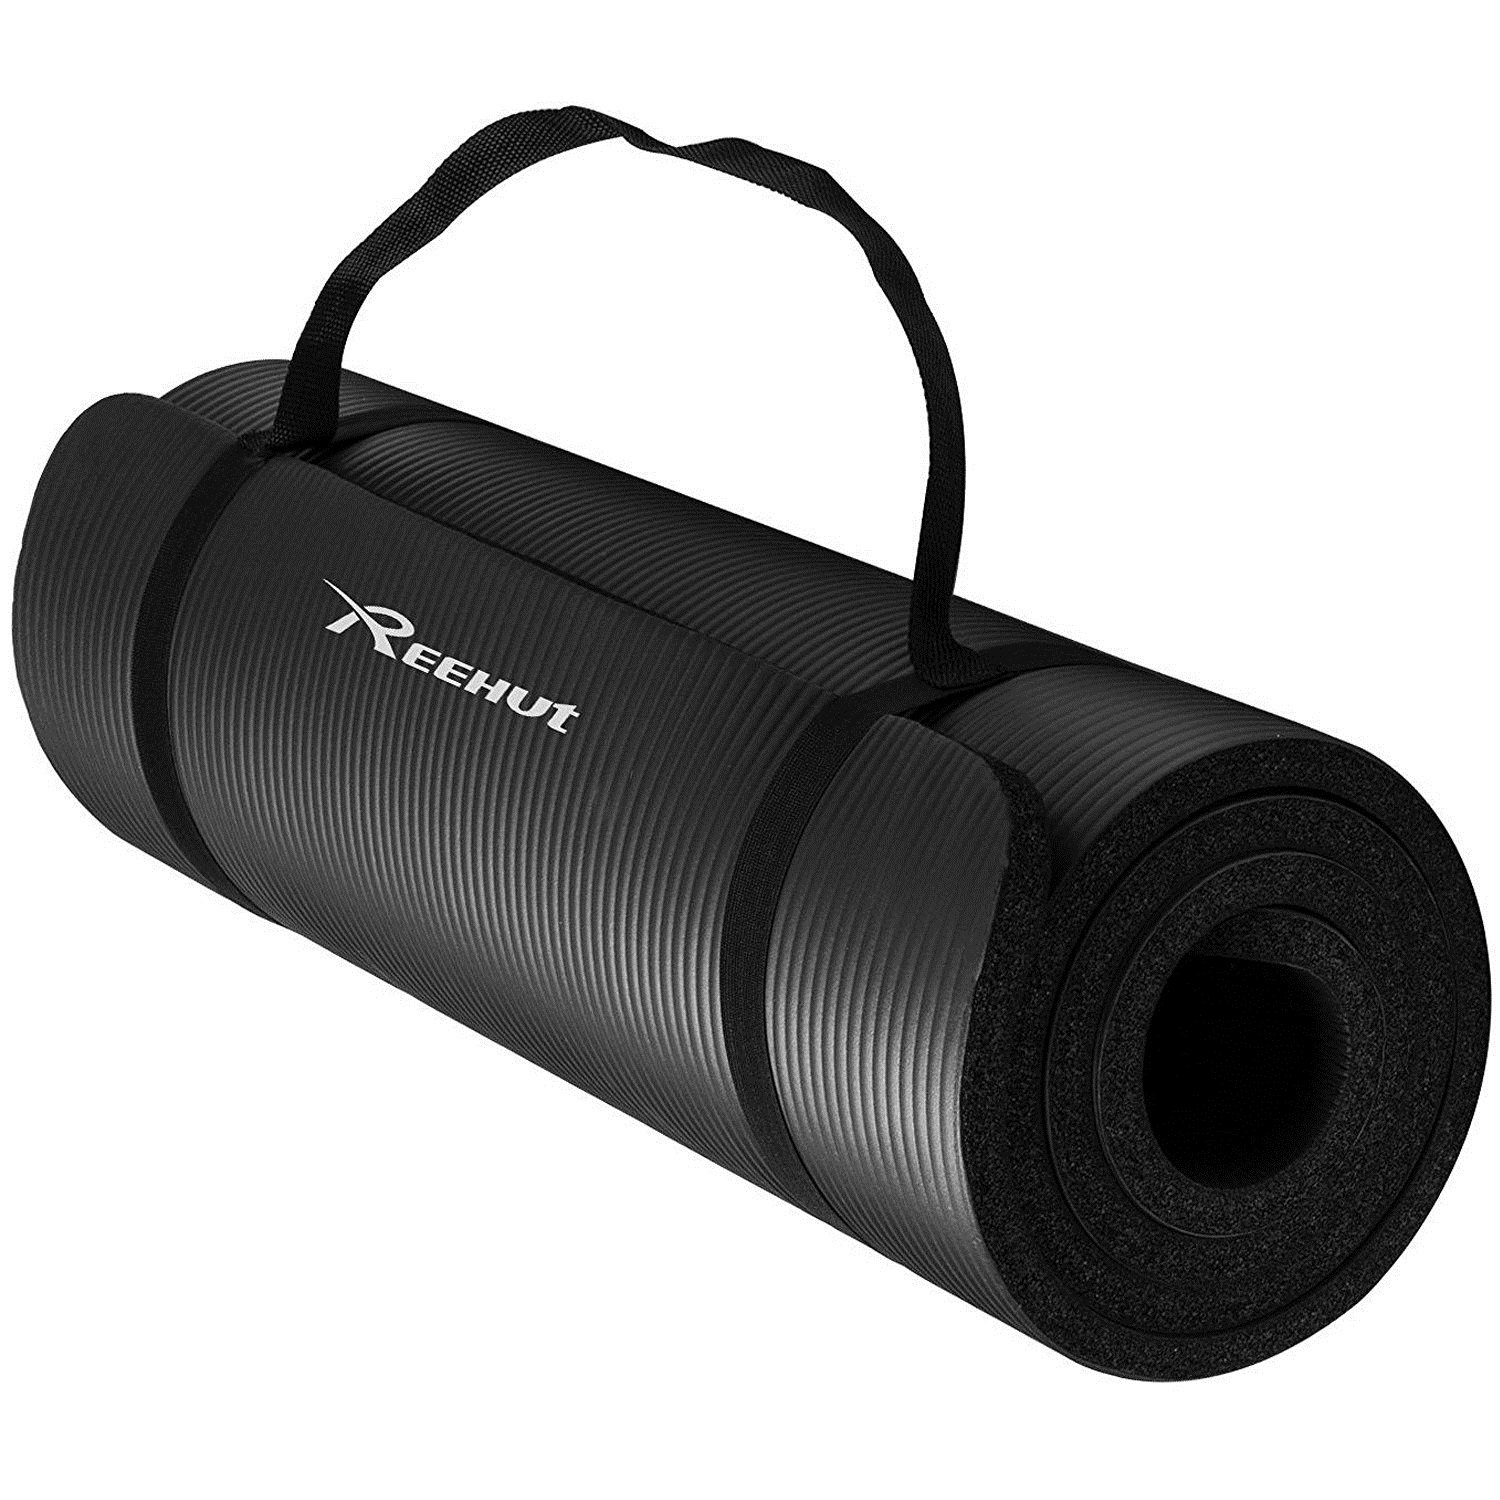 Floor mats for gym - Best Sellers